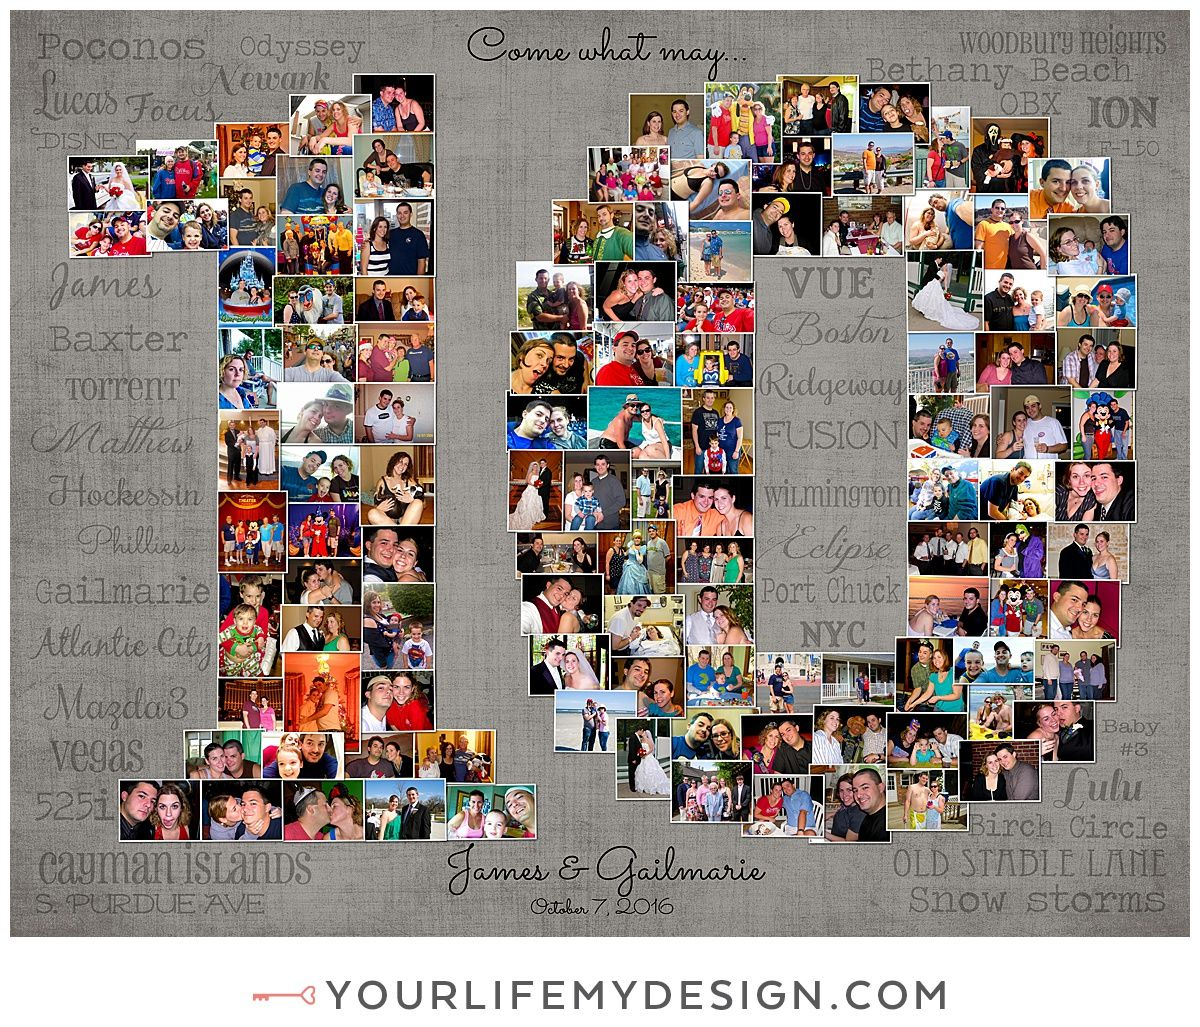 Pin By Aleix Rosell On Regalos In 2020 10th Wedding Anniversary Gift 10th Wedding Anniversary Photo Collage